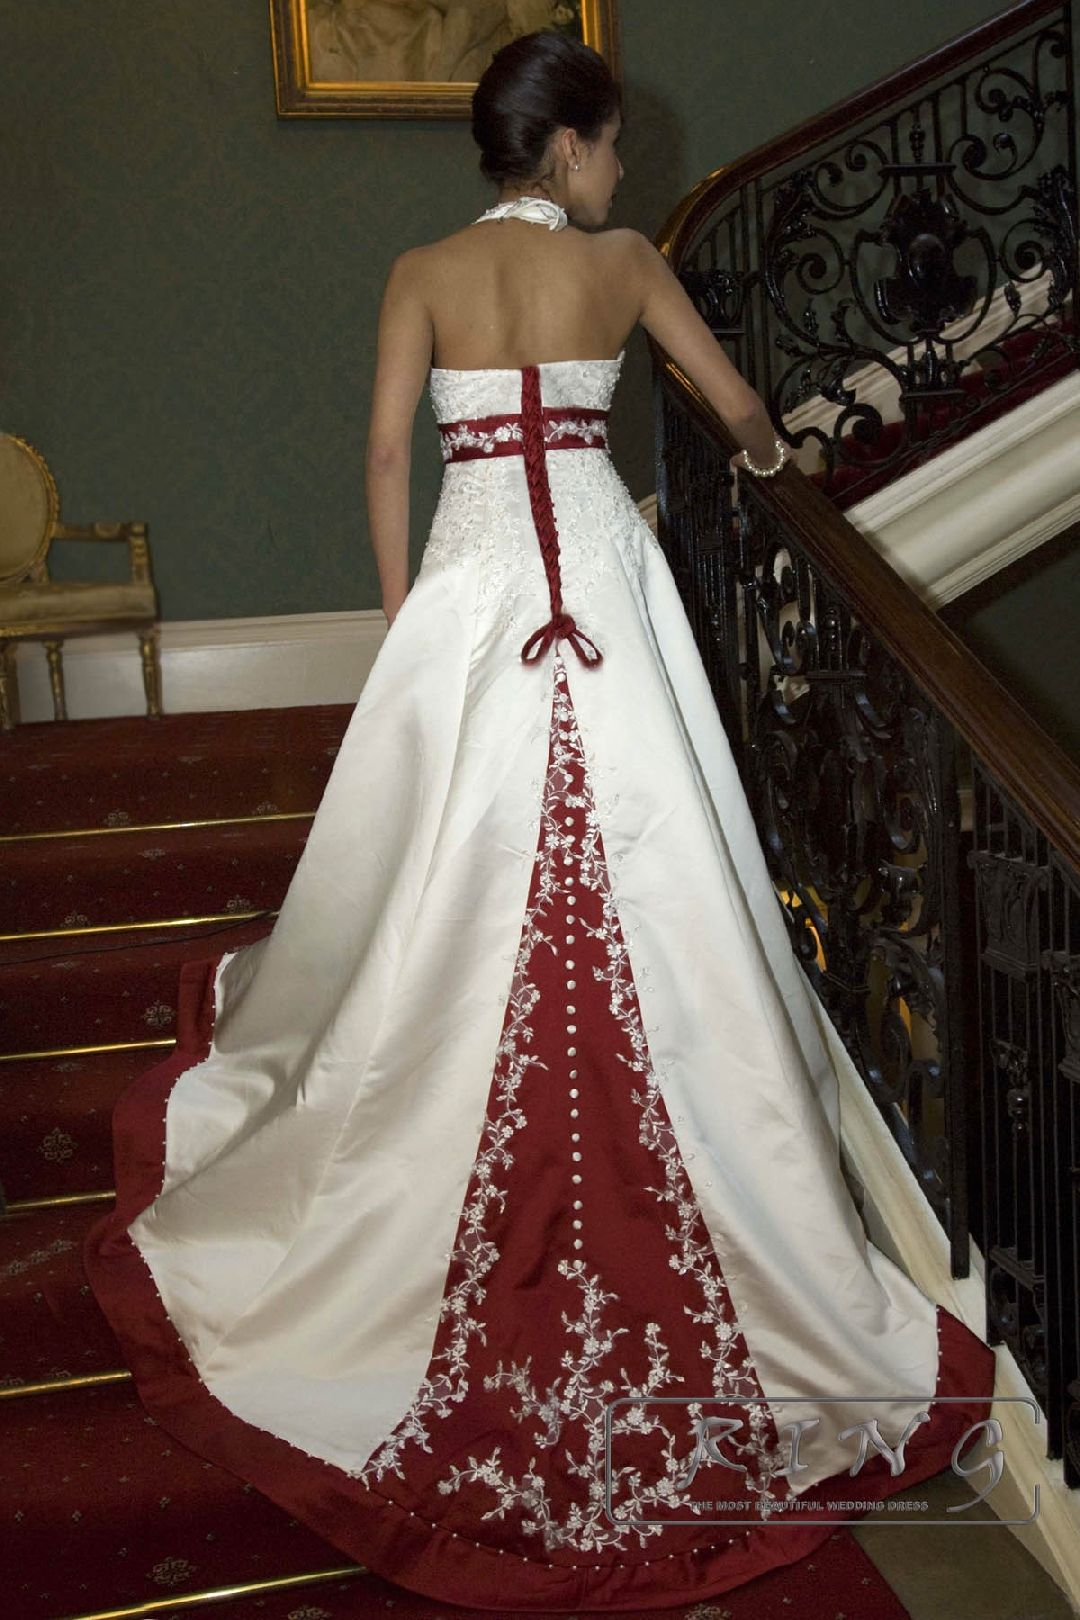 white and burgundy wedding dresses | Wedding at Hawaii | Burgundy